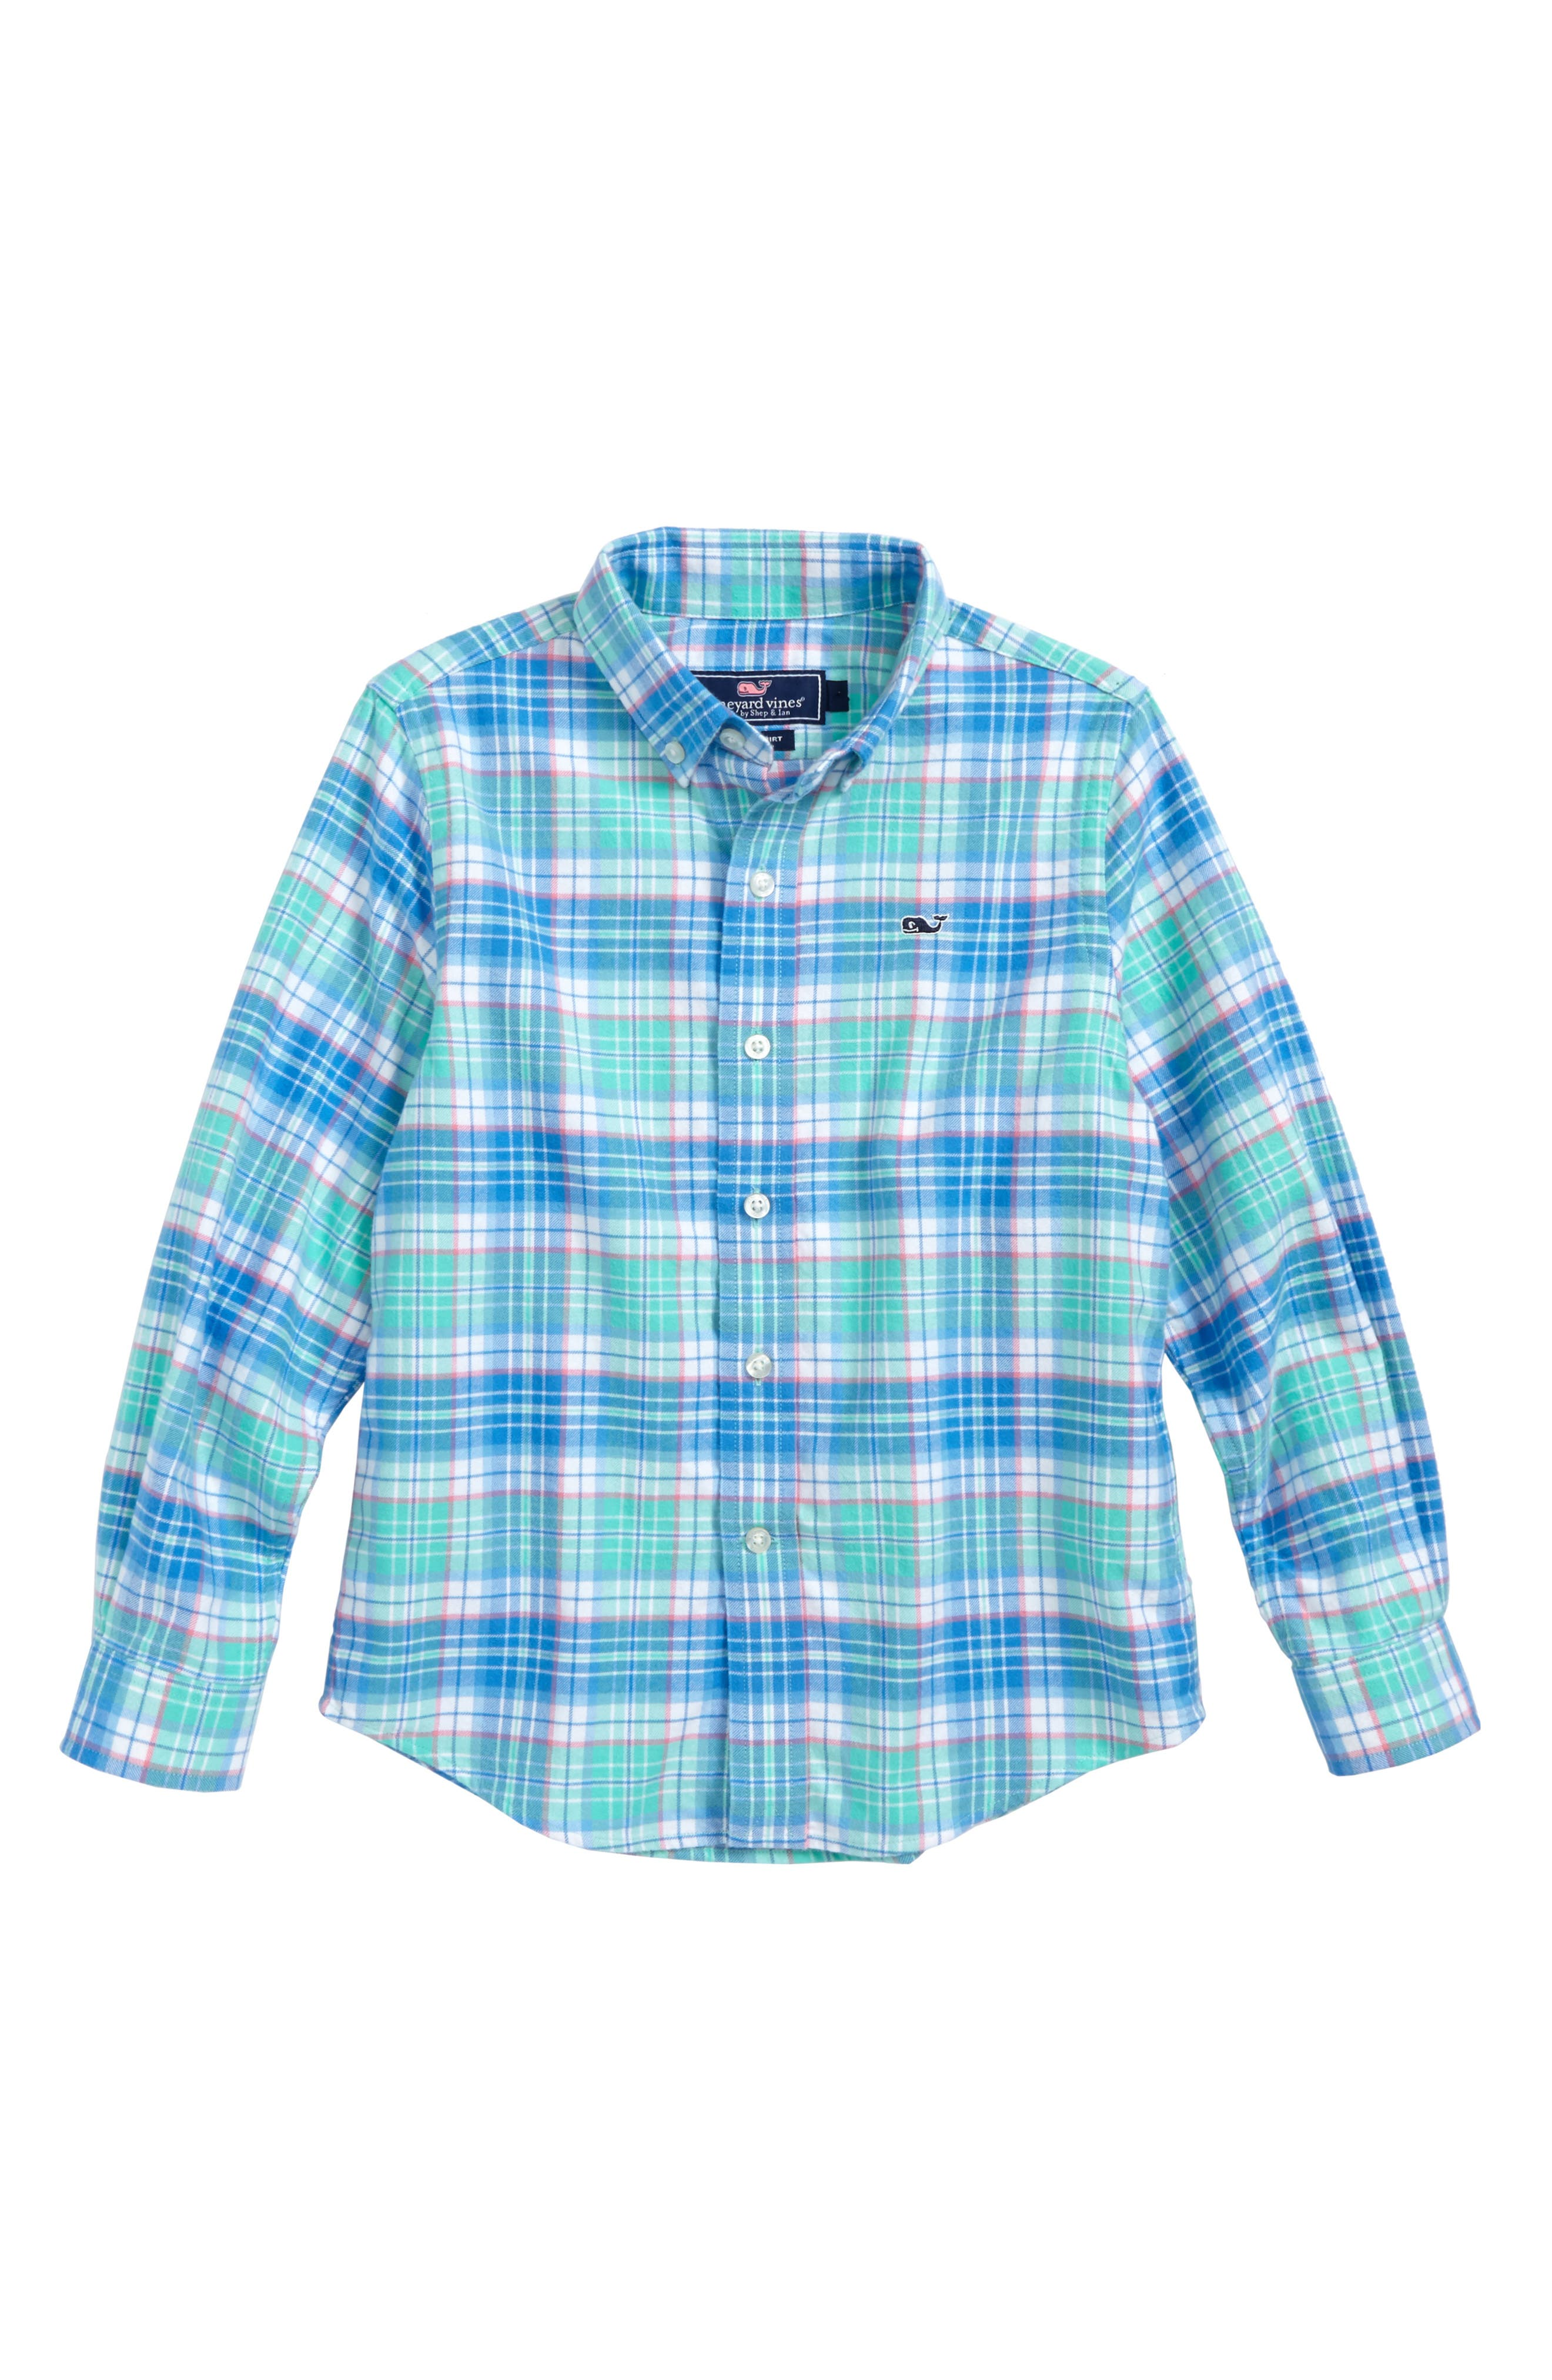 Alternate Image 1 Selected - vineyard vines Sandspar Plaid Whale Flannel Shirt (Toddler Boys & Little Boys)